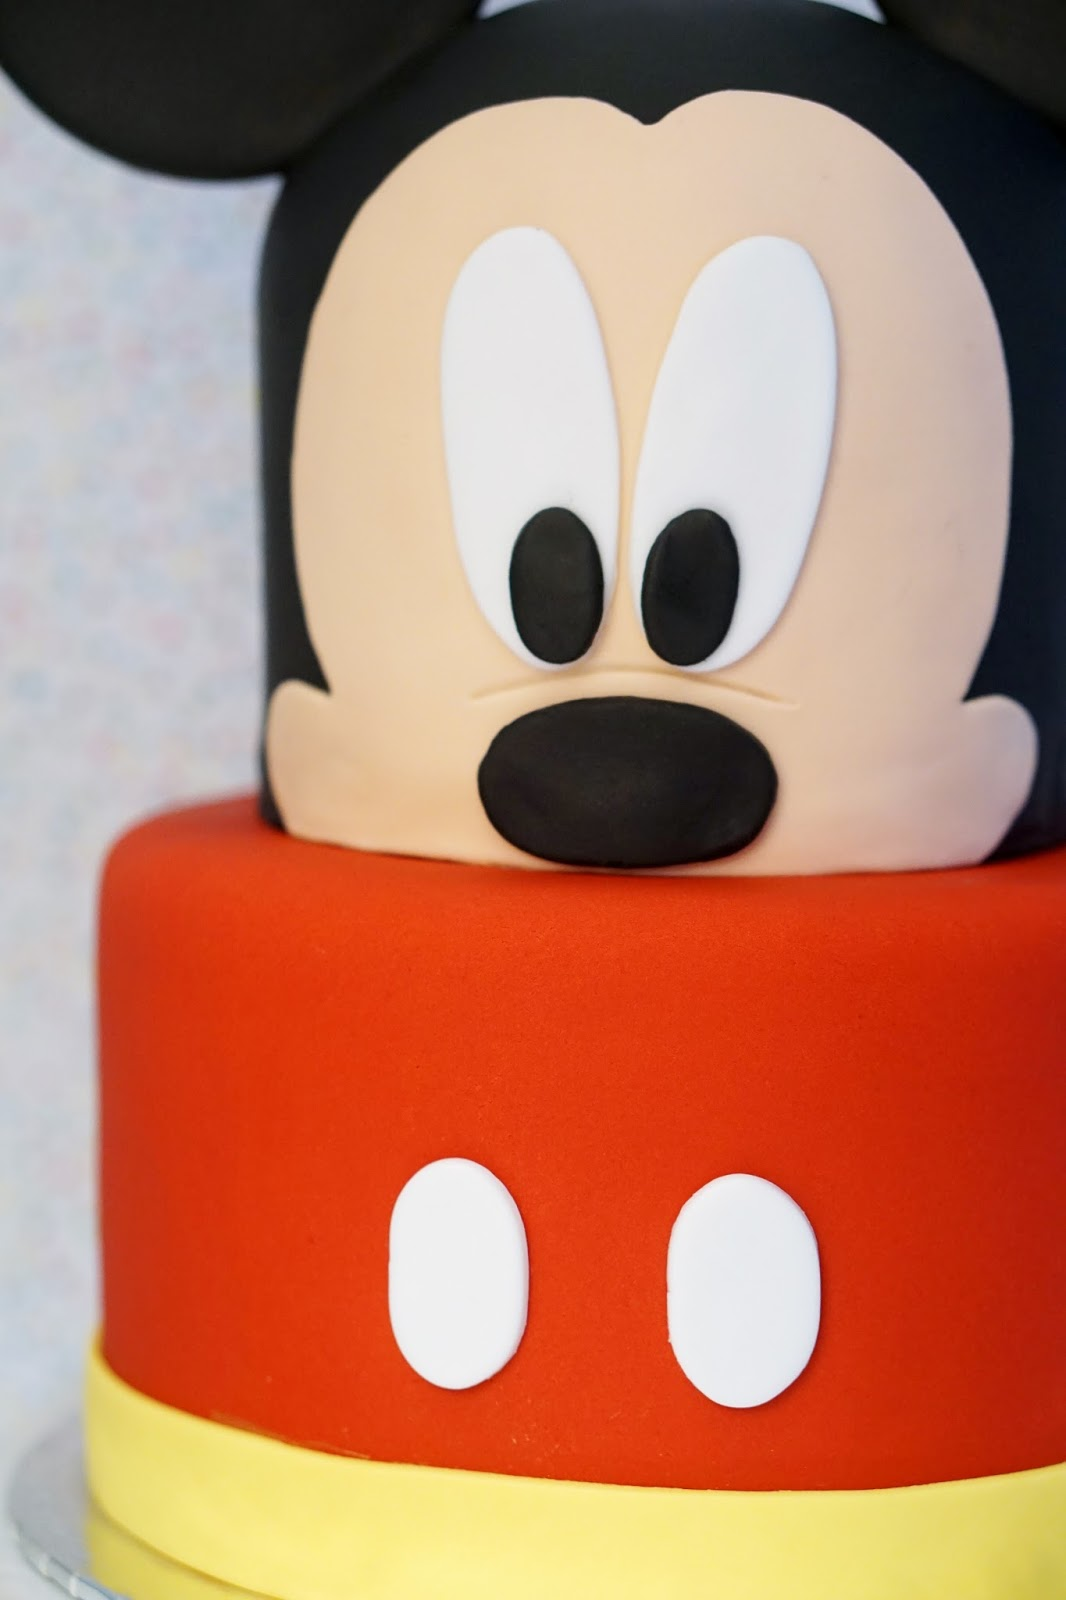 Mickey Mouse Face Template For 8 Inch Cake - Mickey Mouse Face ...